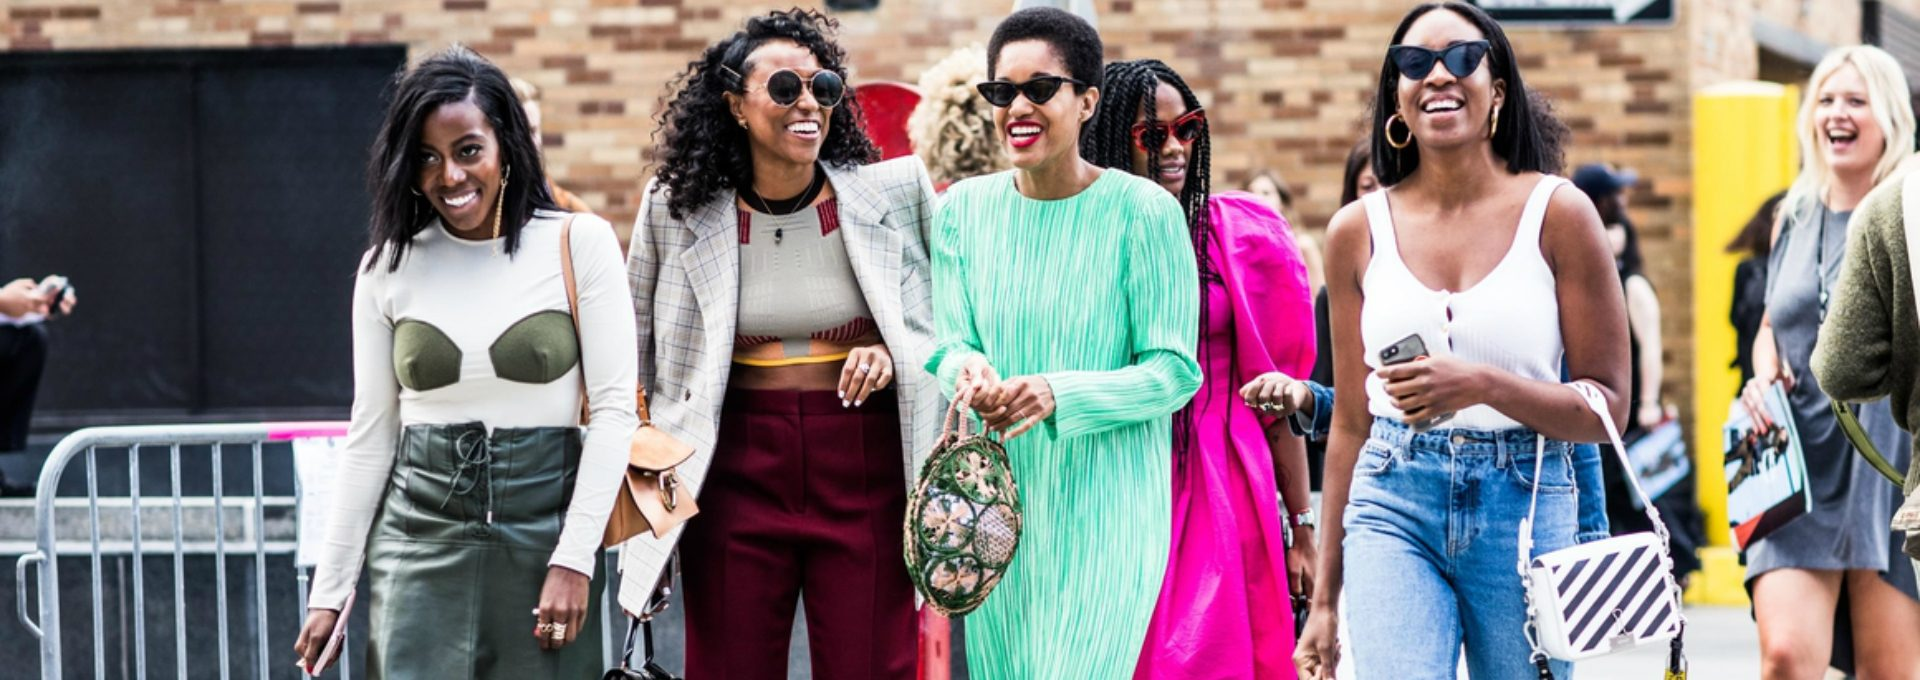 Fashion Trends - 10 Best Street Style Looks from New York Fashion Week - New York Fashion Week Spring/Summer 2018 - NYFW 2018 ➤ Discover the season's newest design news and inspiration ideas. Visit Daily Design News and subscribe our newsletter! #dailydesignnews #designnews #bestdesignevets #NYFW2018 #NewYorkFashionWeek2018 #NYFW #NewYorkFashionWeek